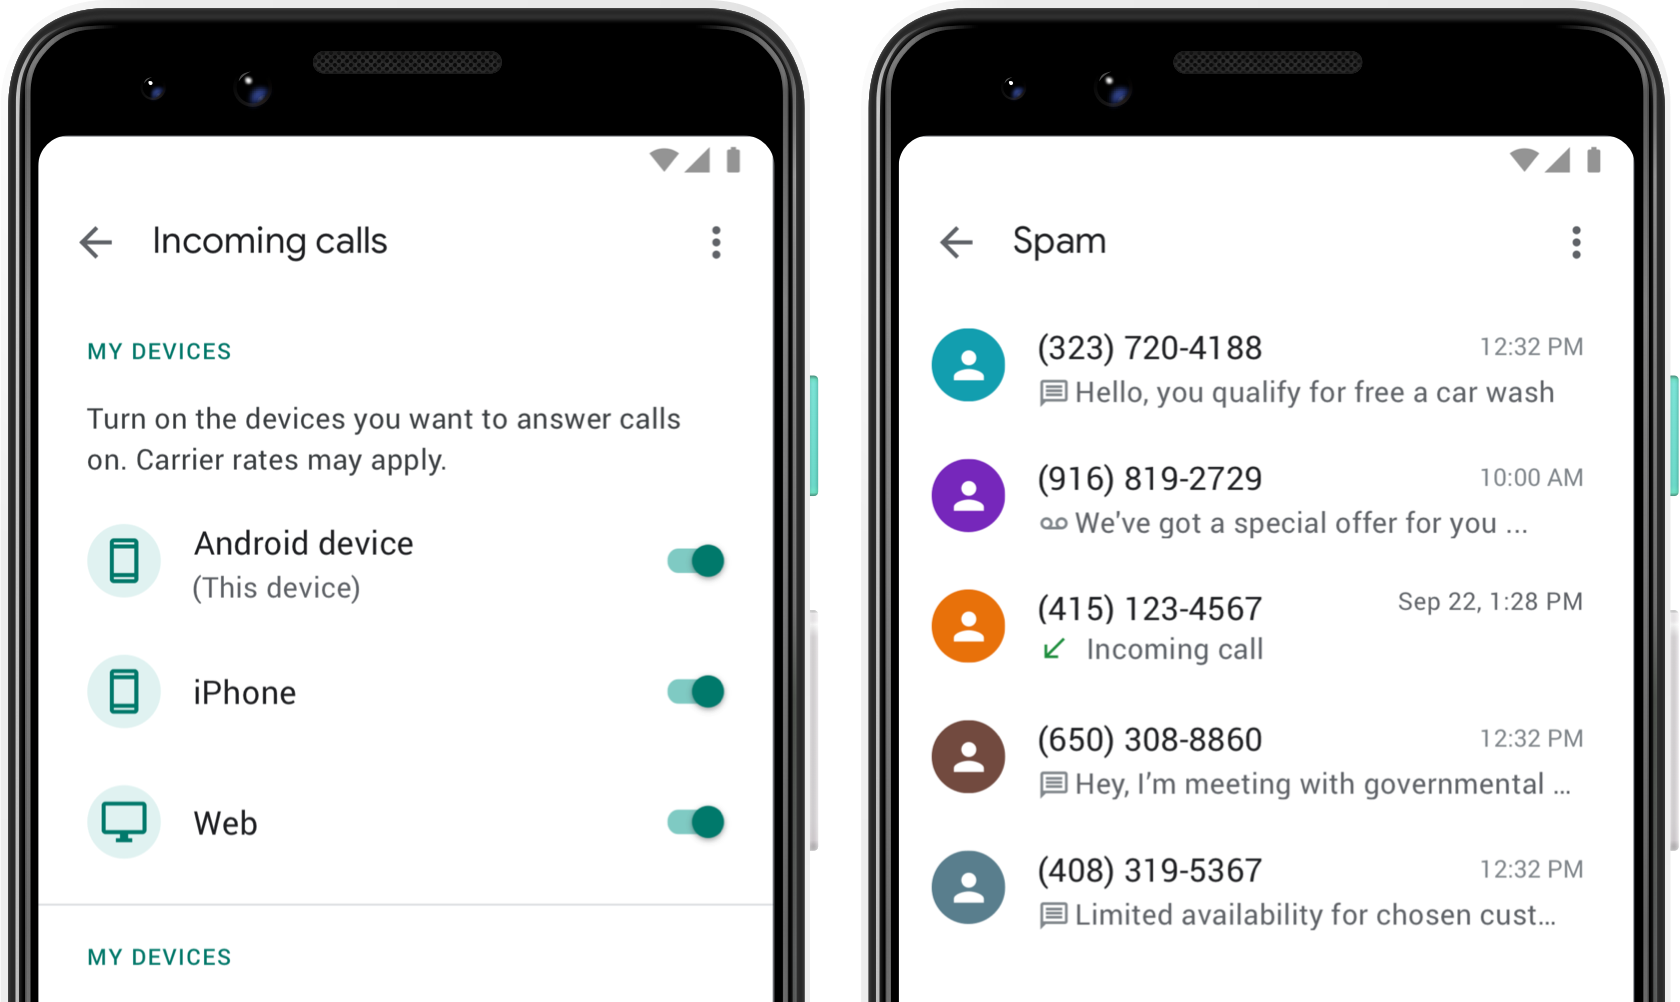 Image showing Google Voice's spam page, showing a list of calls that were marked as spam